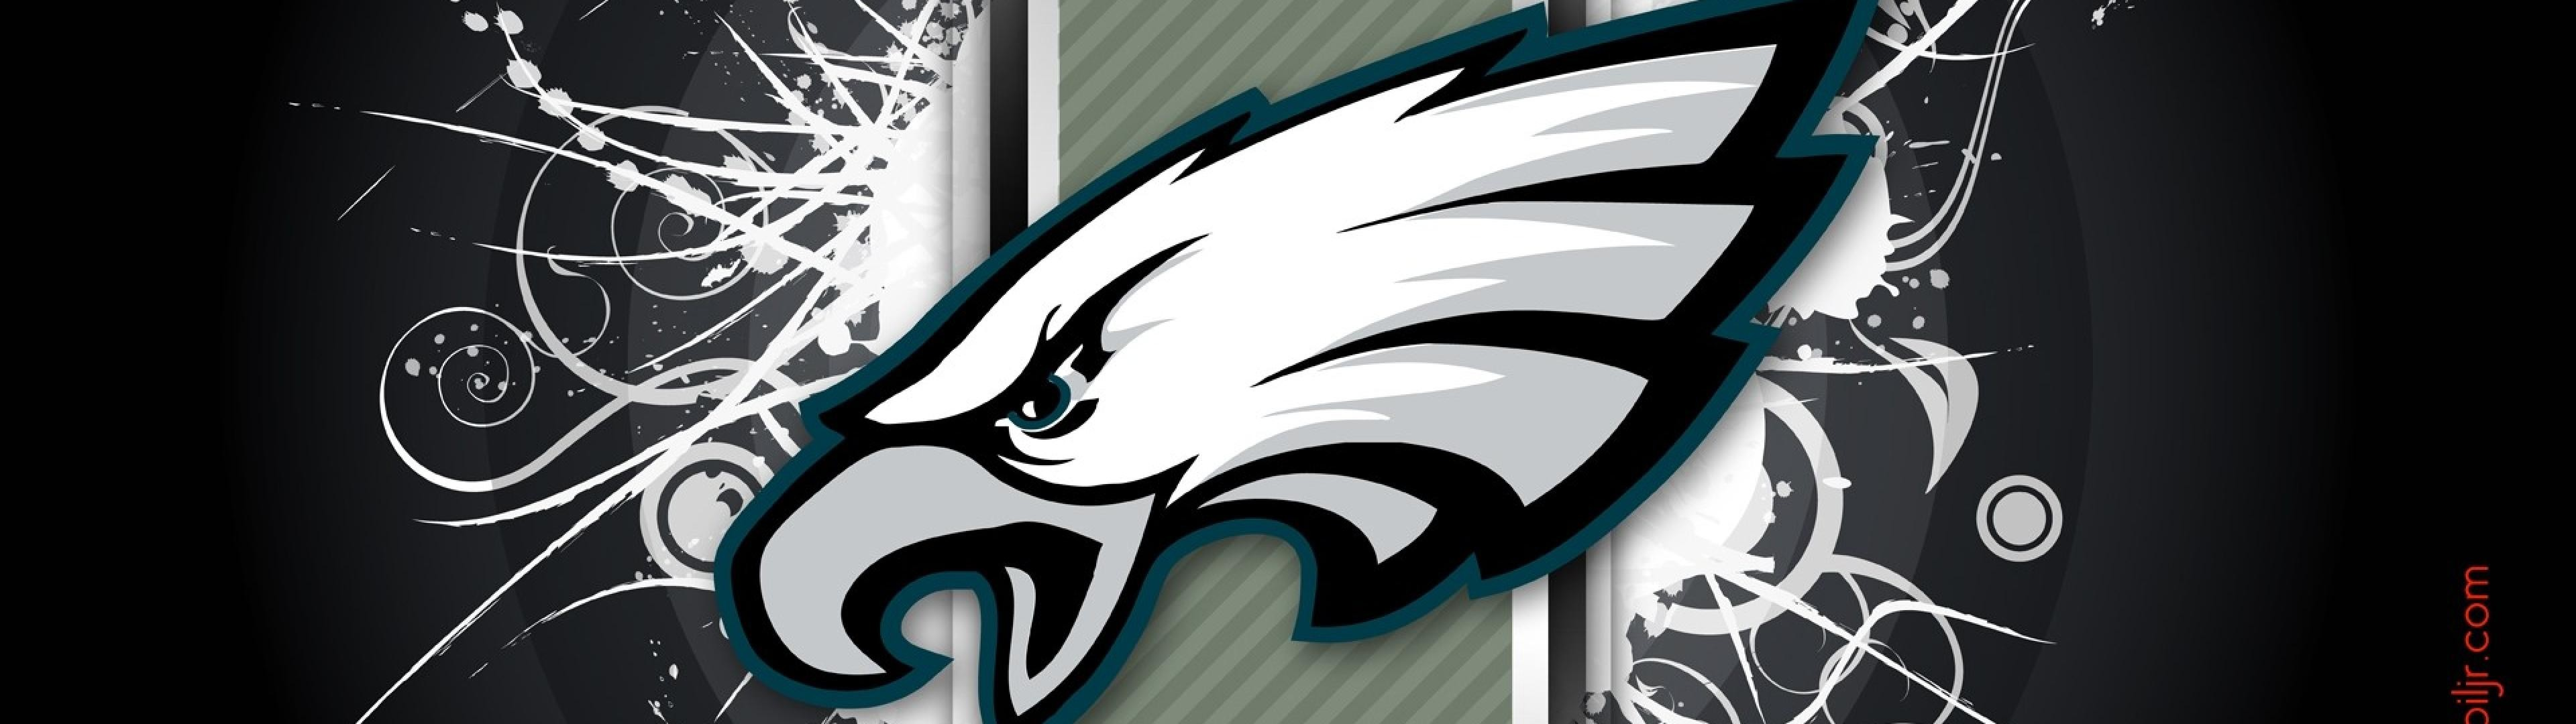 3840x1080 Philadelphia Eagles Wallpapers HD Widescreen